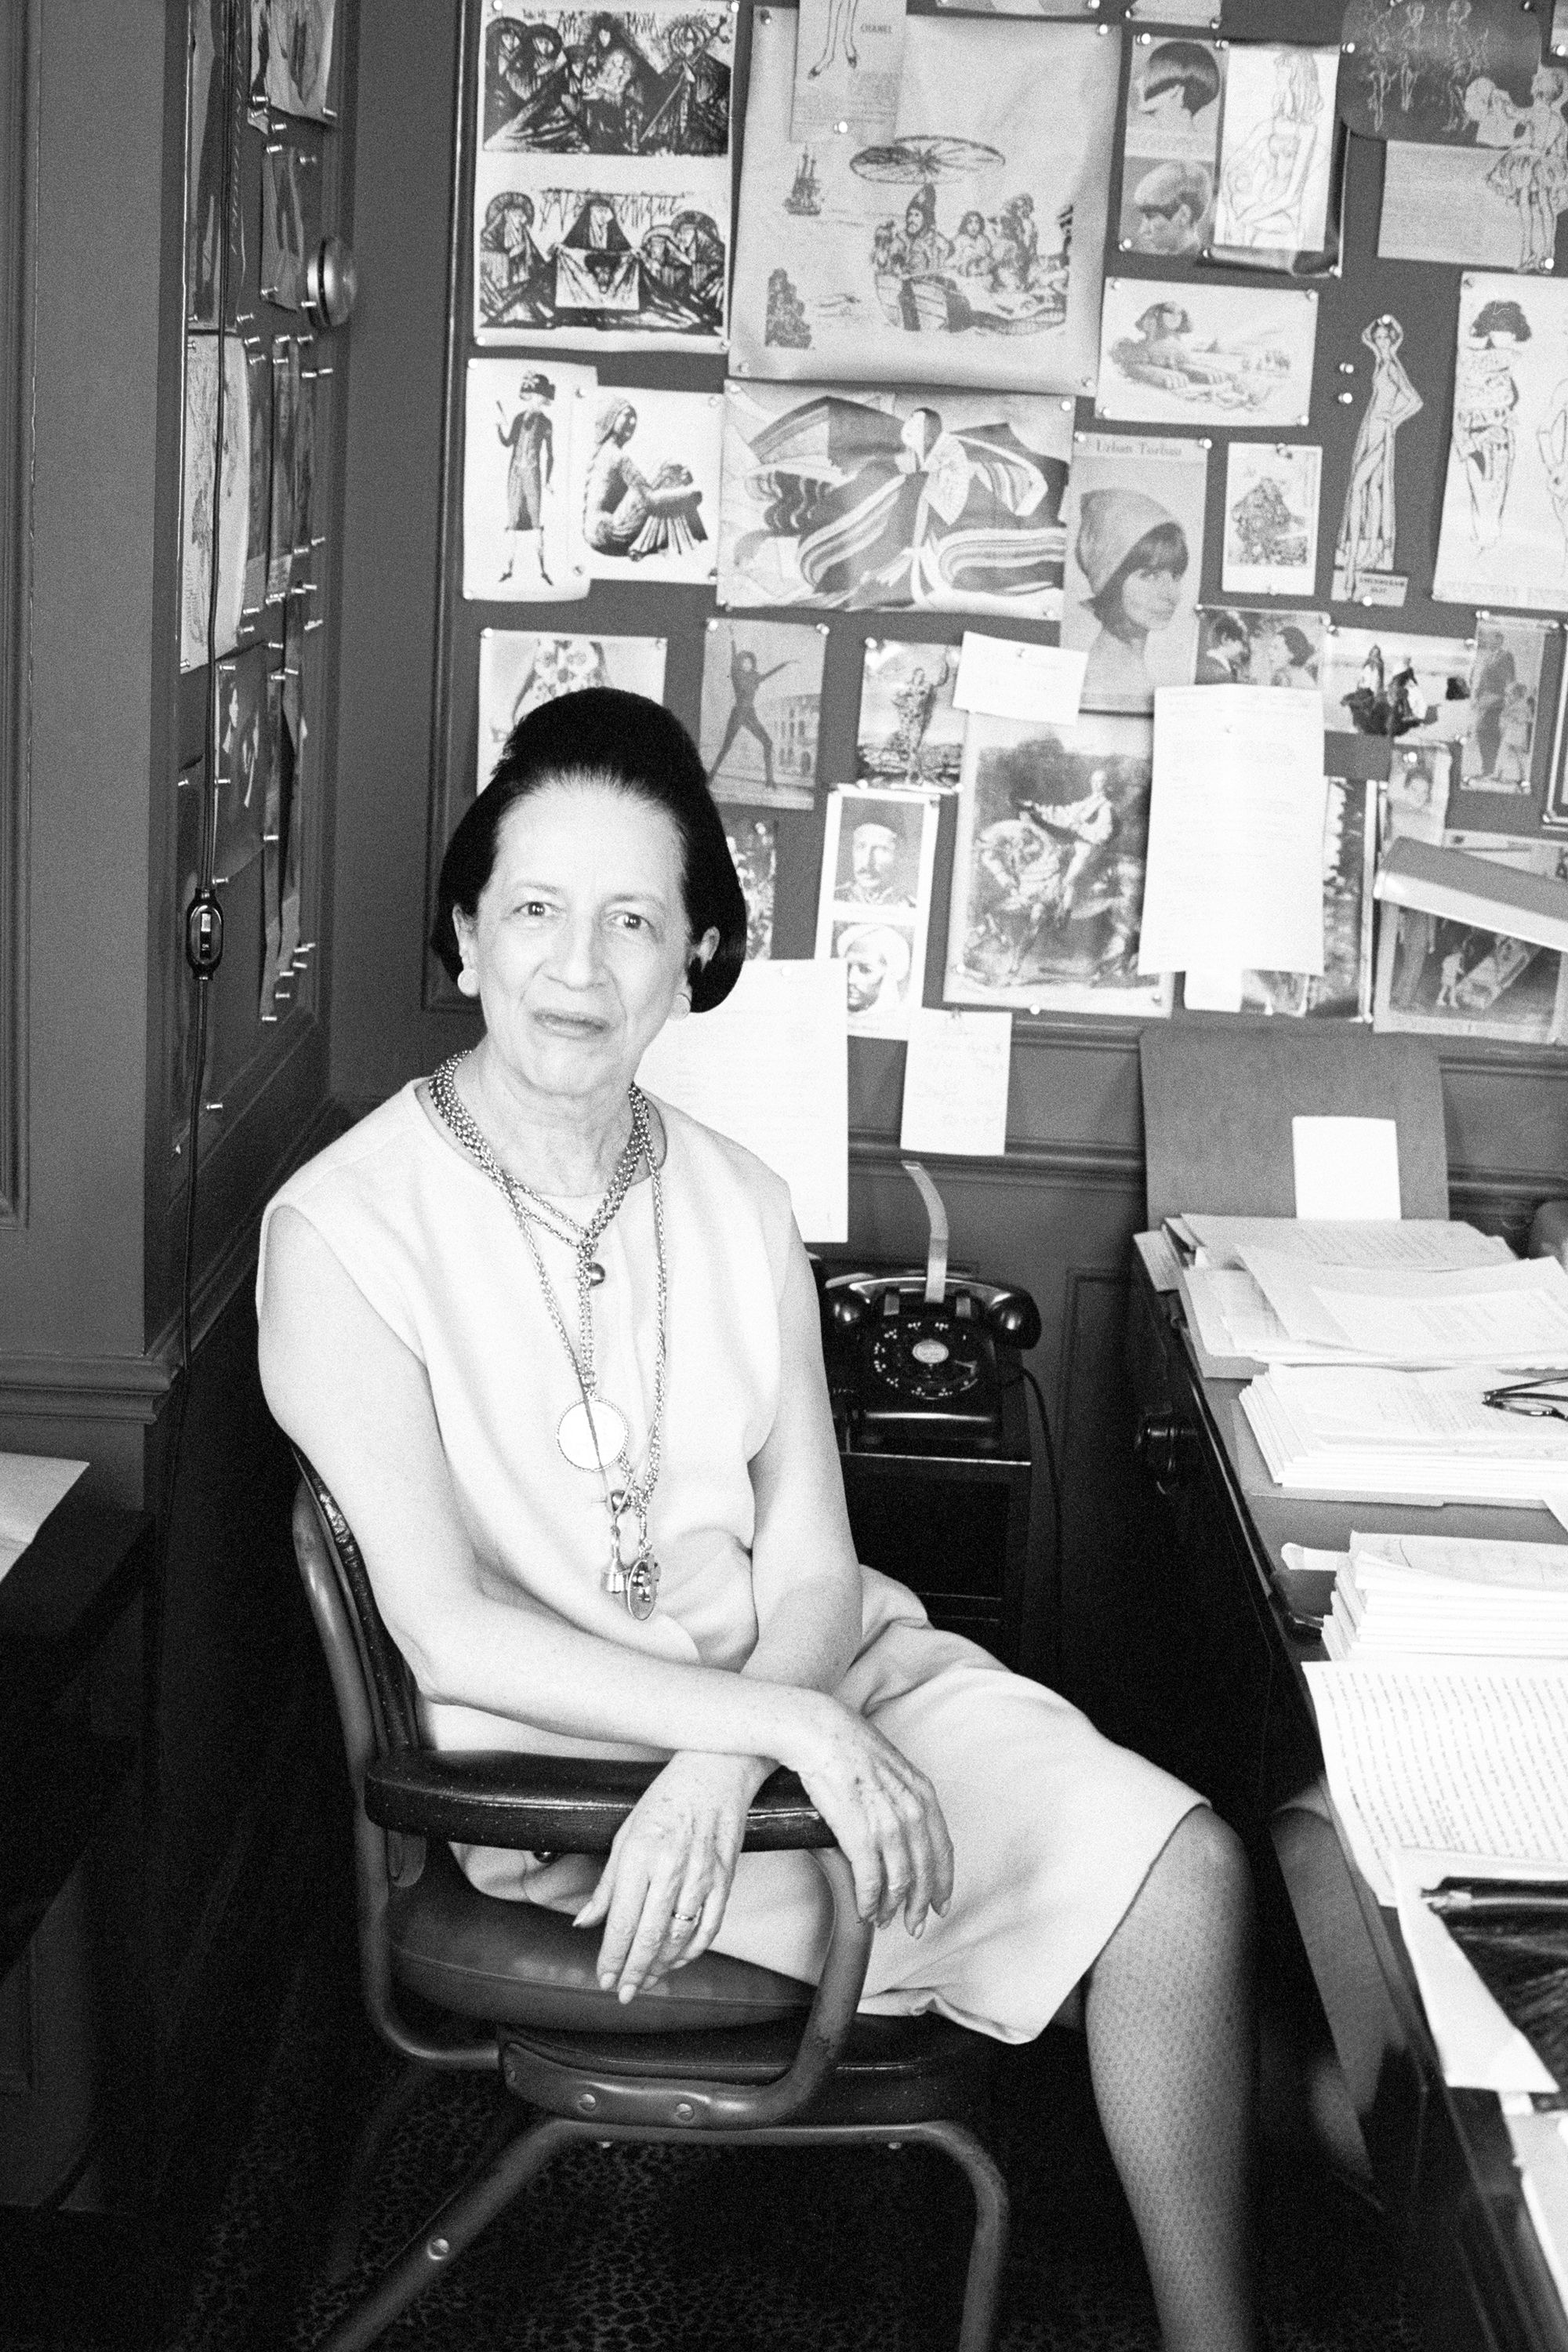 """<p>In 1922, at the age of 25, Vreeland was featured by her future employer, <em>Vogue</em>, in a roundup of socialites with their cars. The story cheekily read, """"Such motors as these accelerate the social whirl. Miss Diana Dalziel, one of the most attractive debutantes of the winter, is shown entering her Cadillac."""" Shortly after, Vreeland moved to London, where she joined a dance company. Like other society women at the time who ran their own boutiques, Vreeland decided to open up a lingerie business. The stunning socialite would soon become one of the most legendary fashion editors of all time, and one of <em>BAZAAR</em>'s greatest. <span></span></p>"""